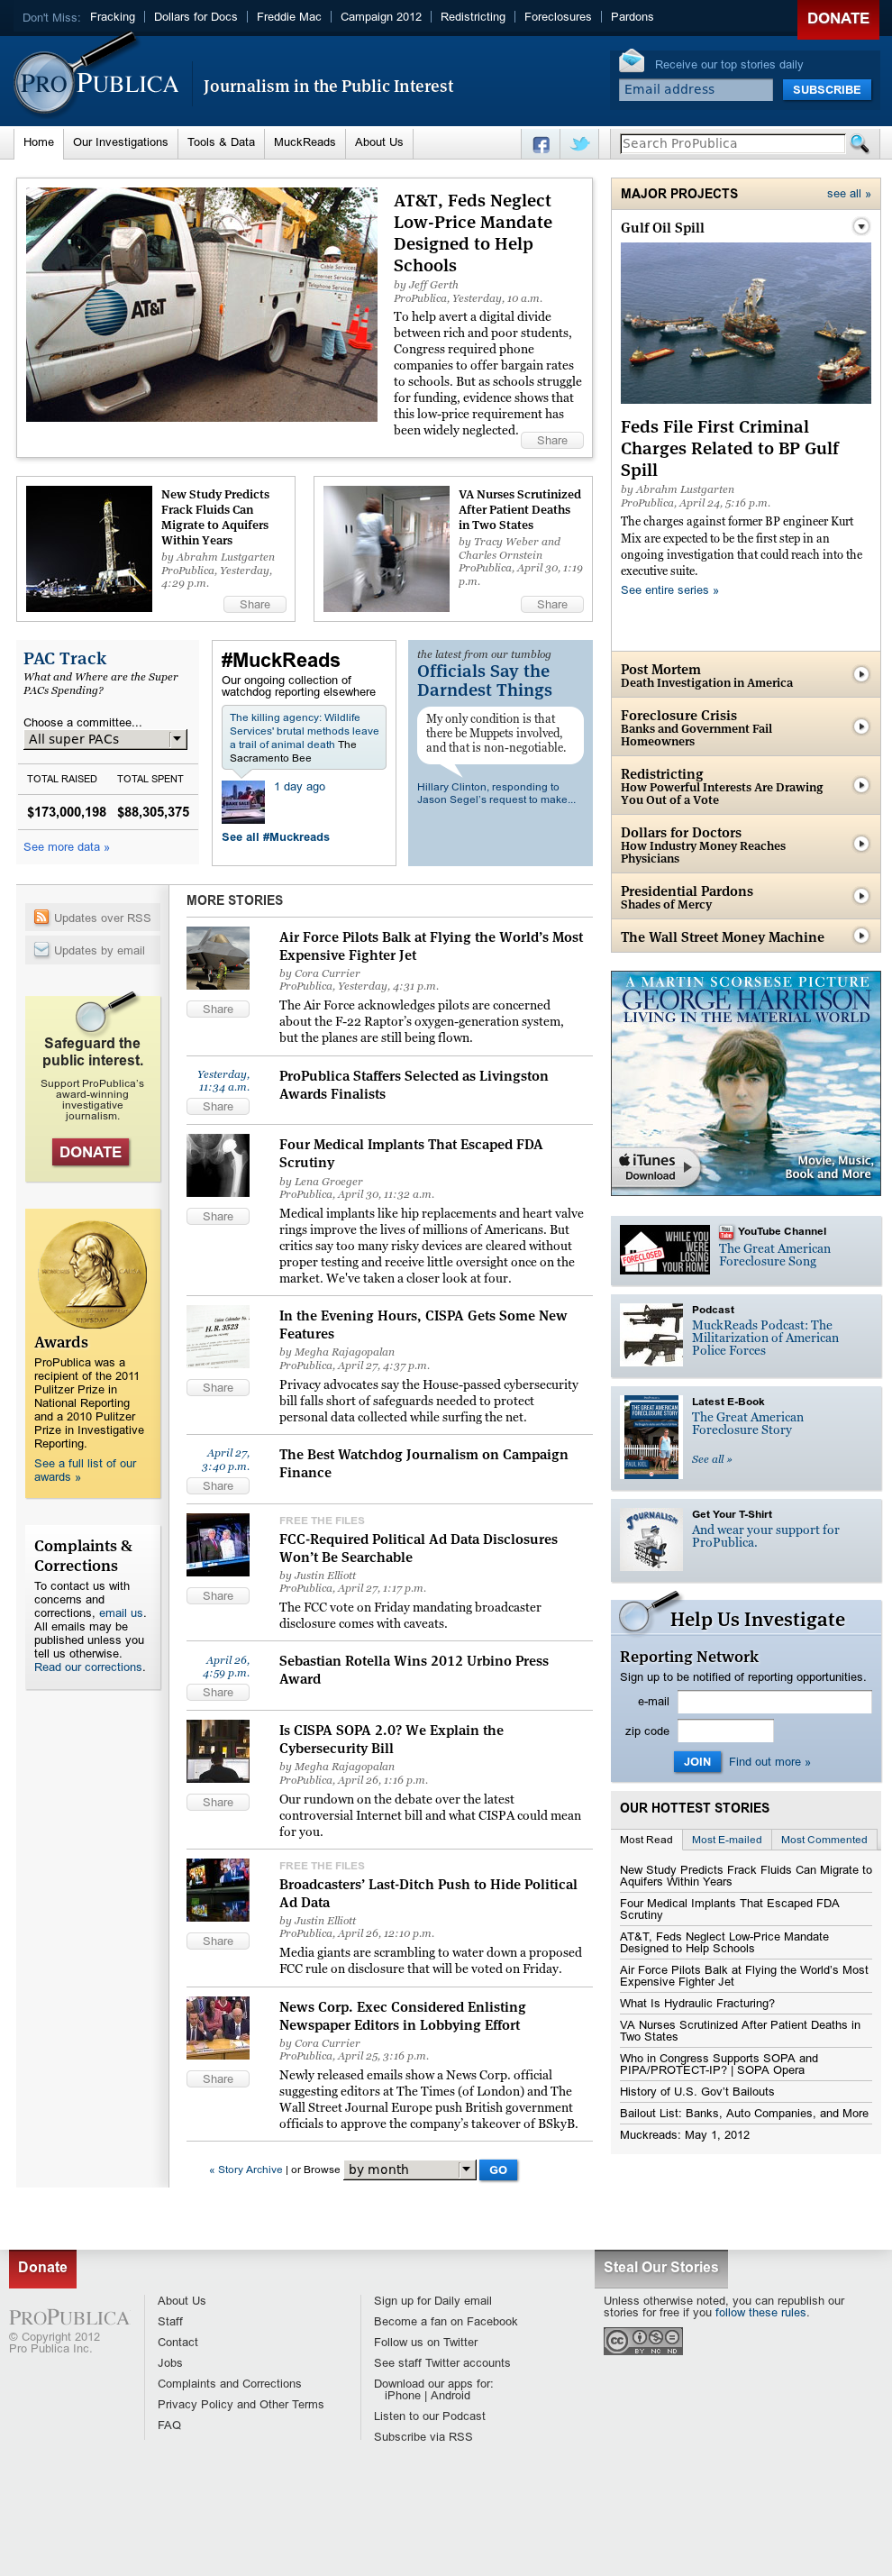 ProPublica at Wednesday May 2, 2012, 7:11 a.m. UTC